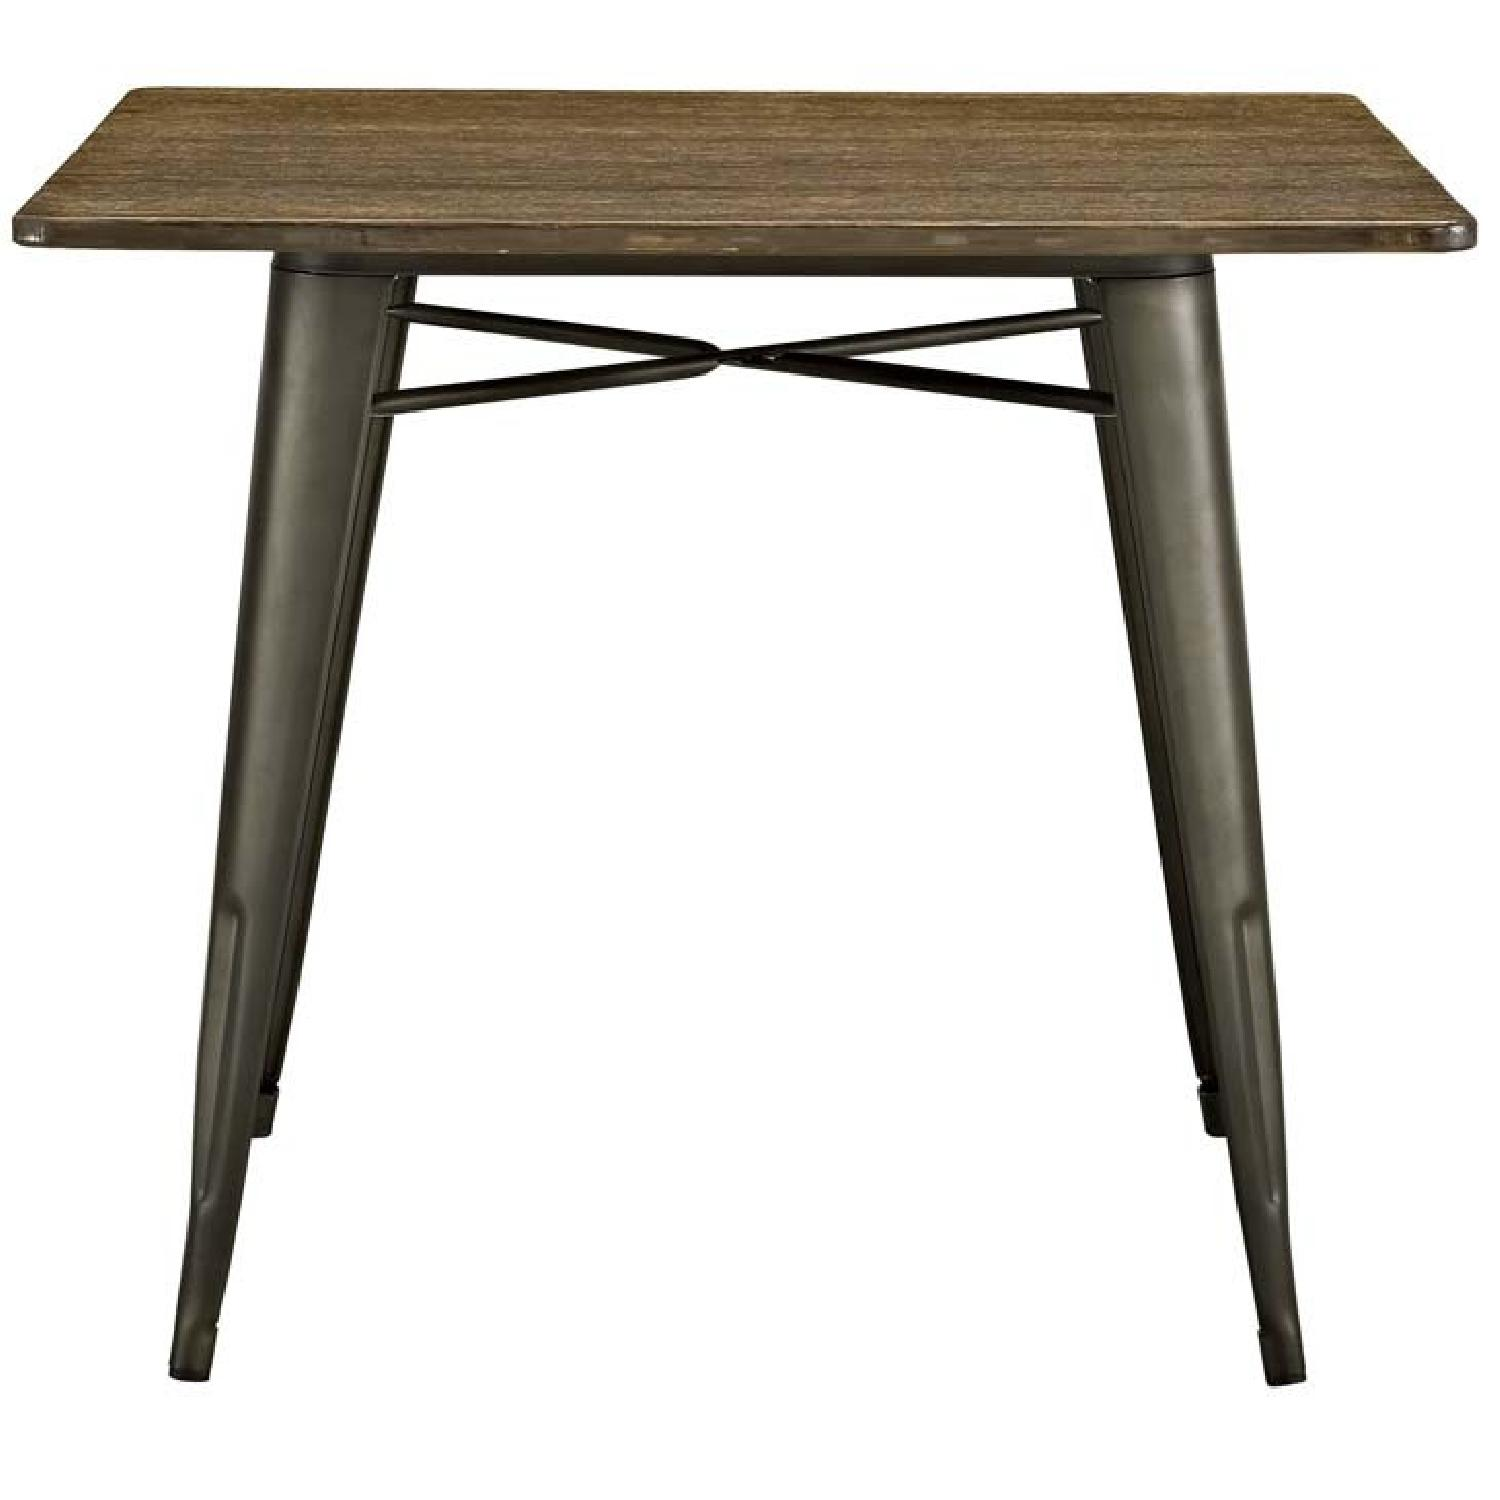 Modway Alacrity Square Dining Table